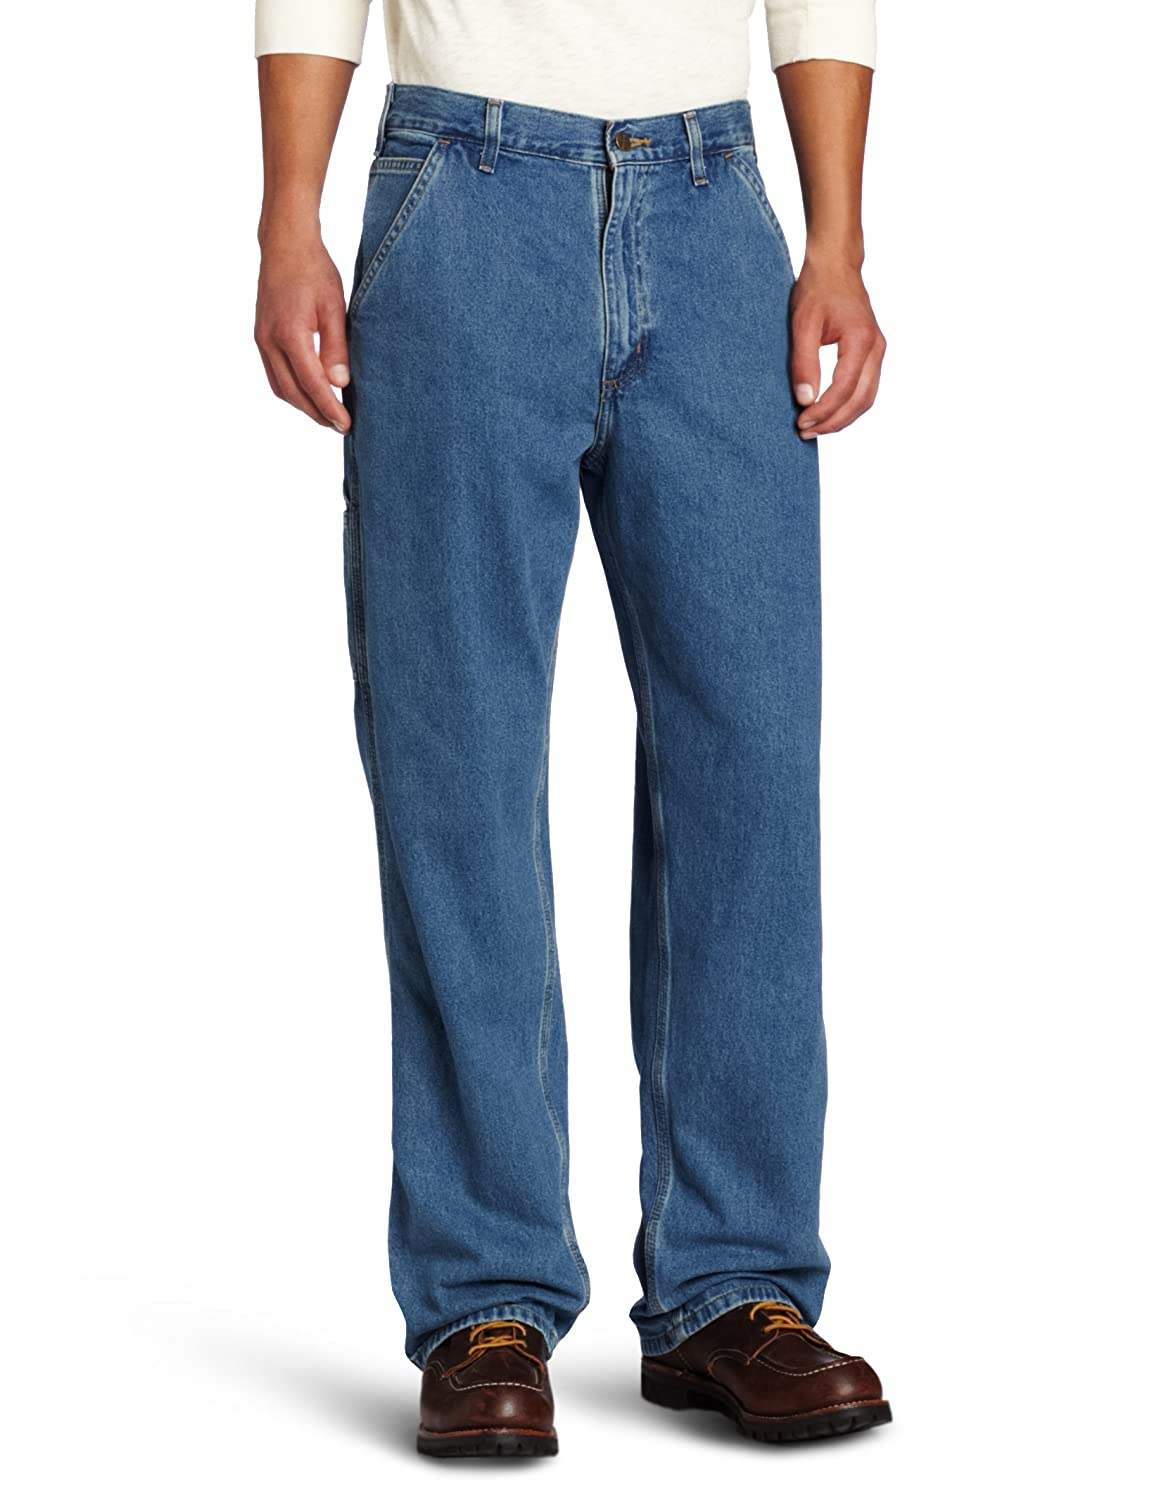 Carhartt Men's Washed Denim Original Fit Work Dungaree B13 Carhartt Sportswear - Mens